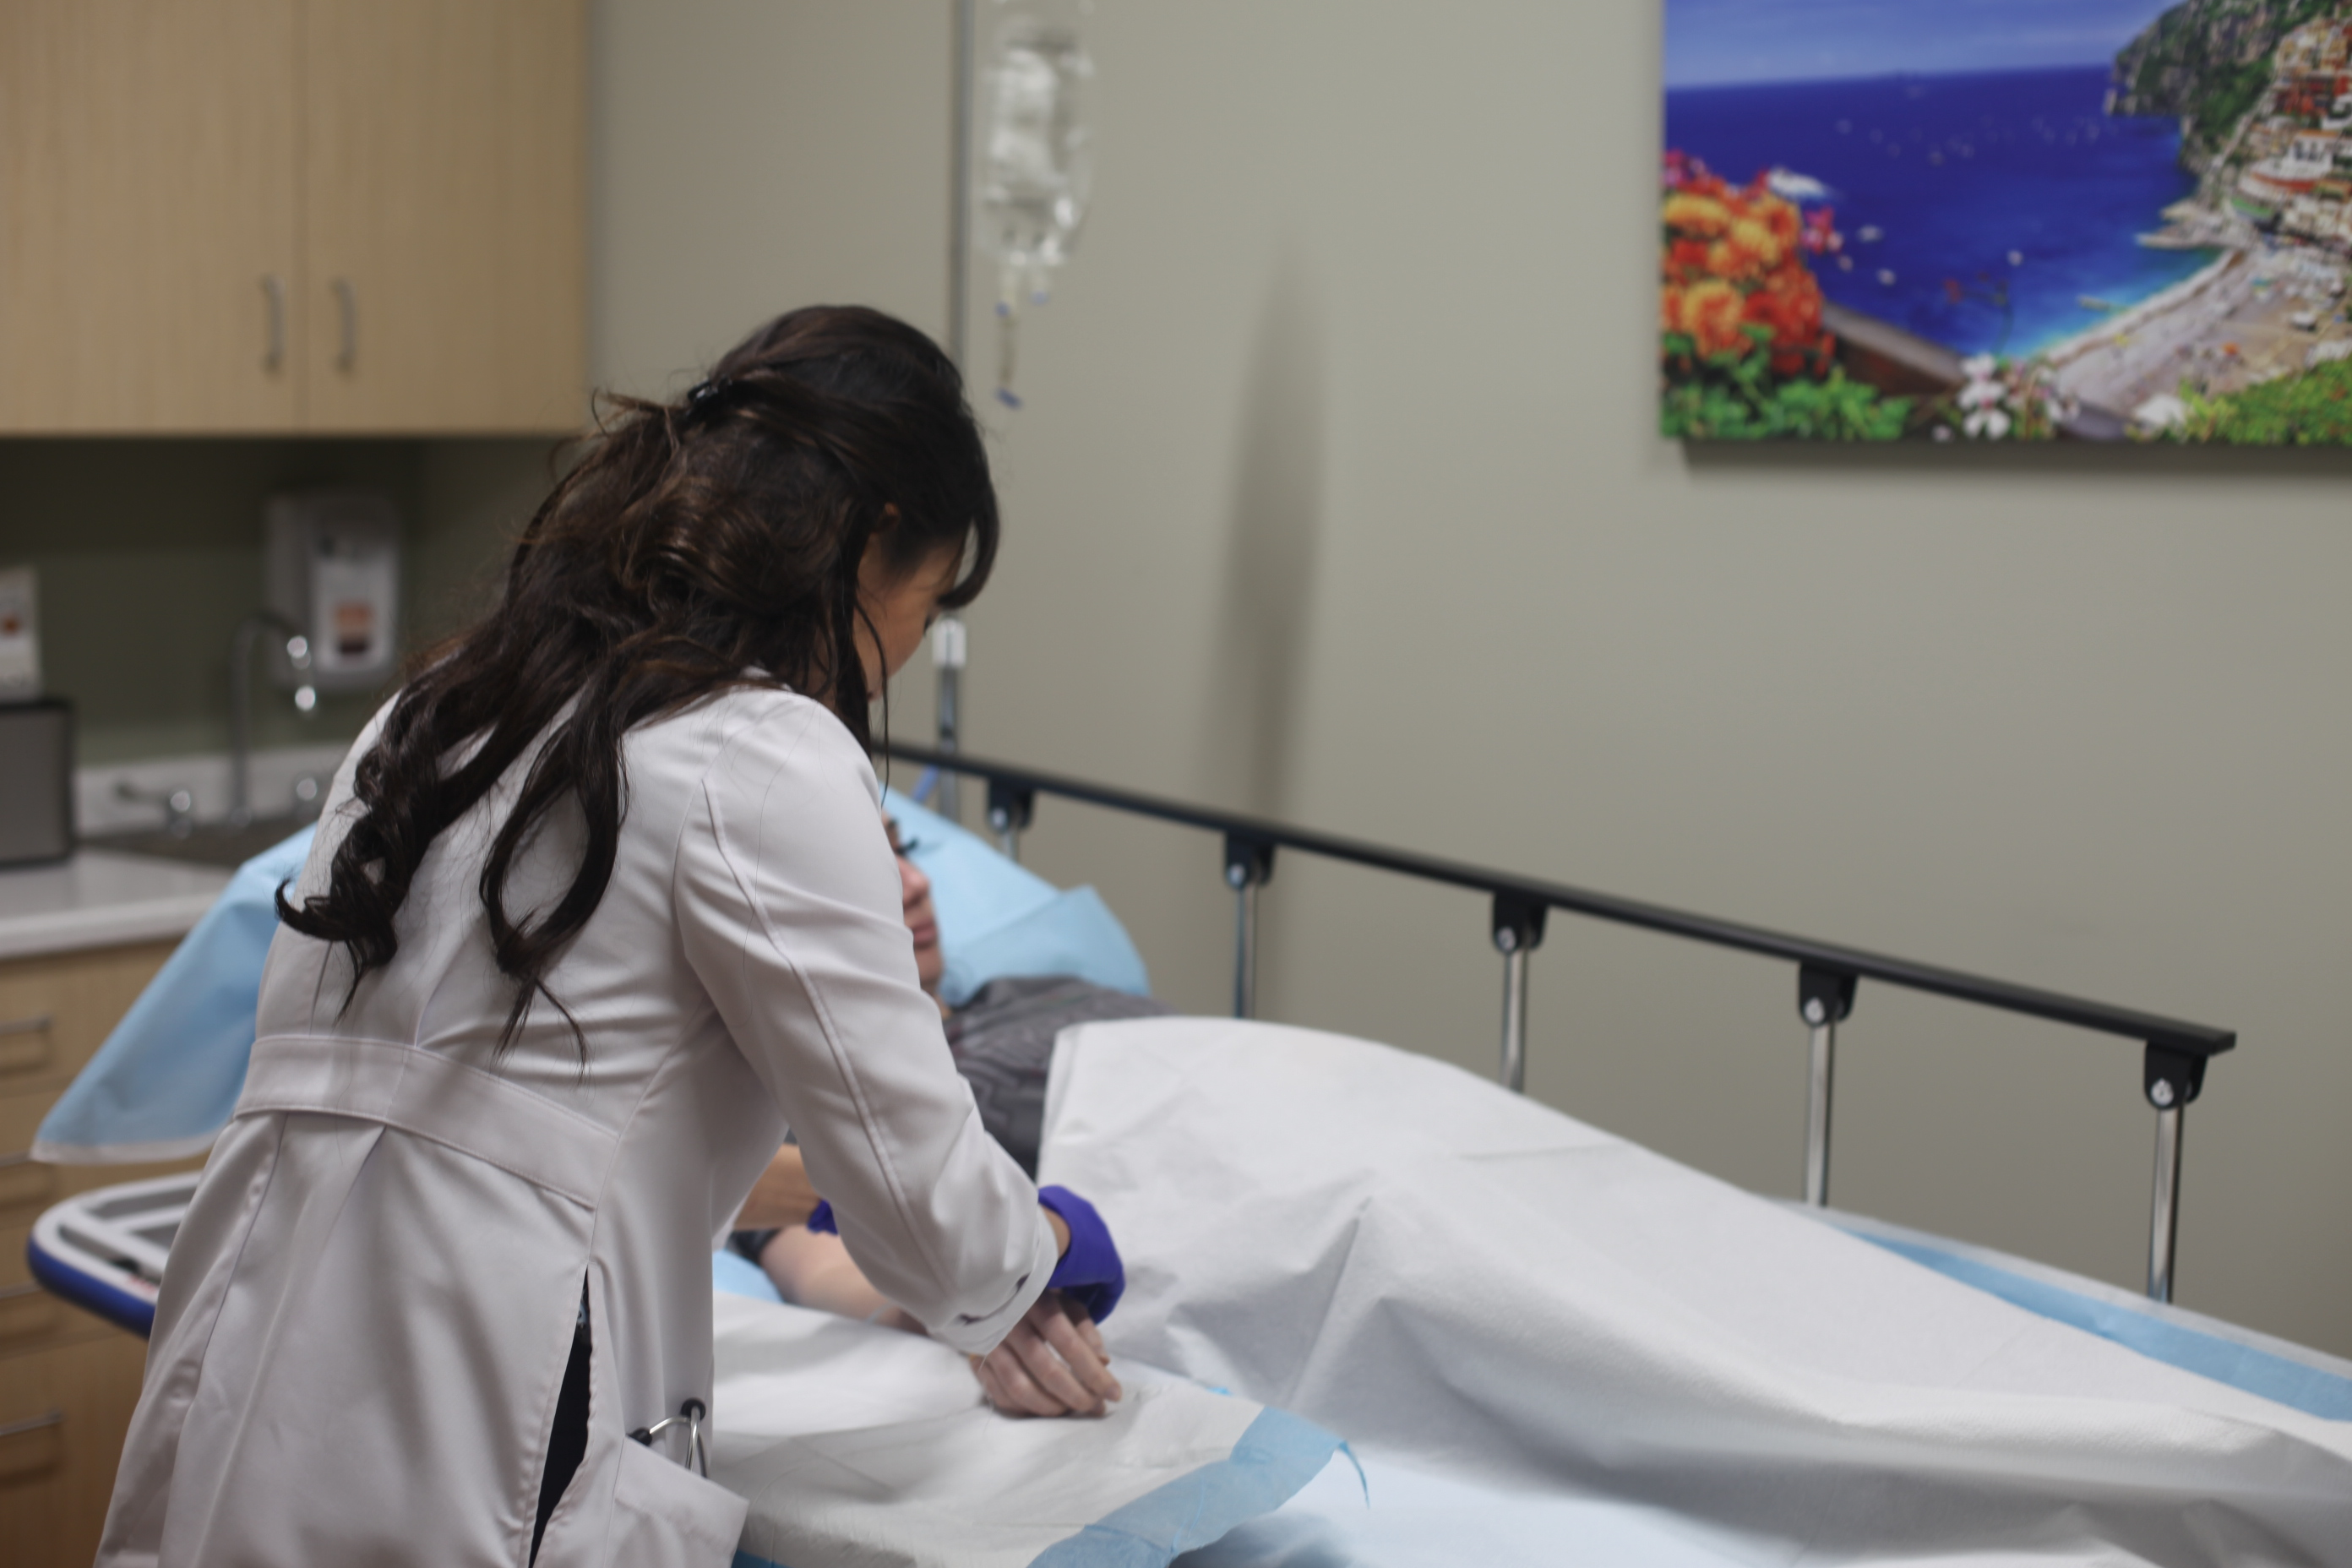 Dr. Yi Zhang providing treatment to patient for common illnesses and injuries